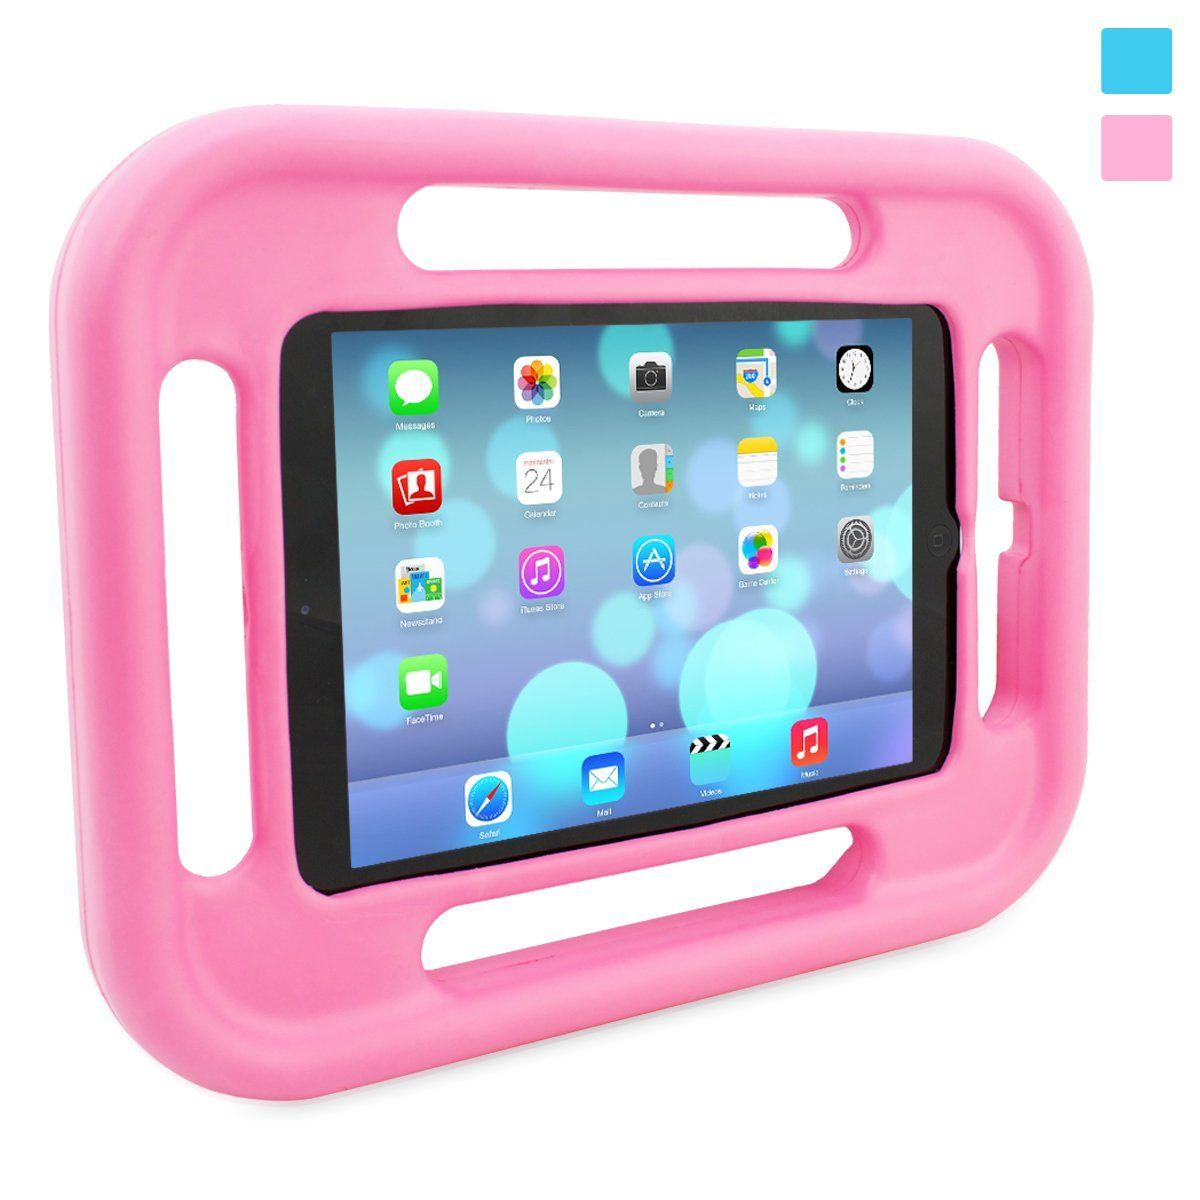 Shock Proof And Drop Proof Kid Cover For Ipad Air Snugg